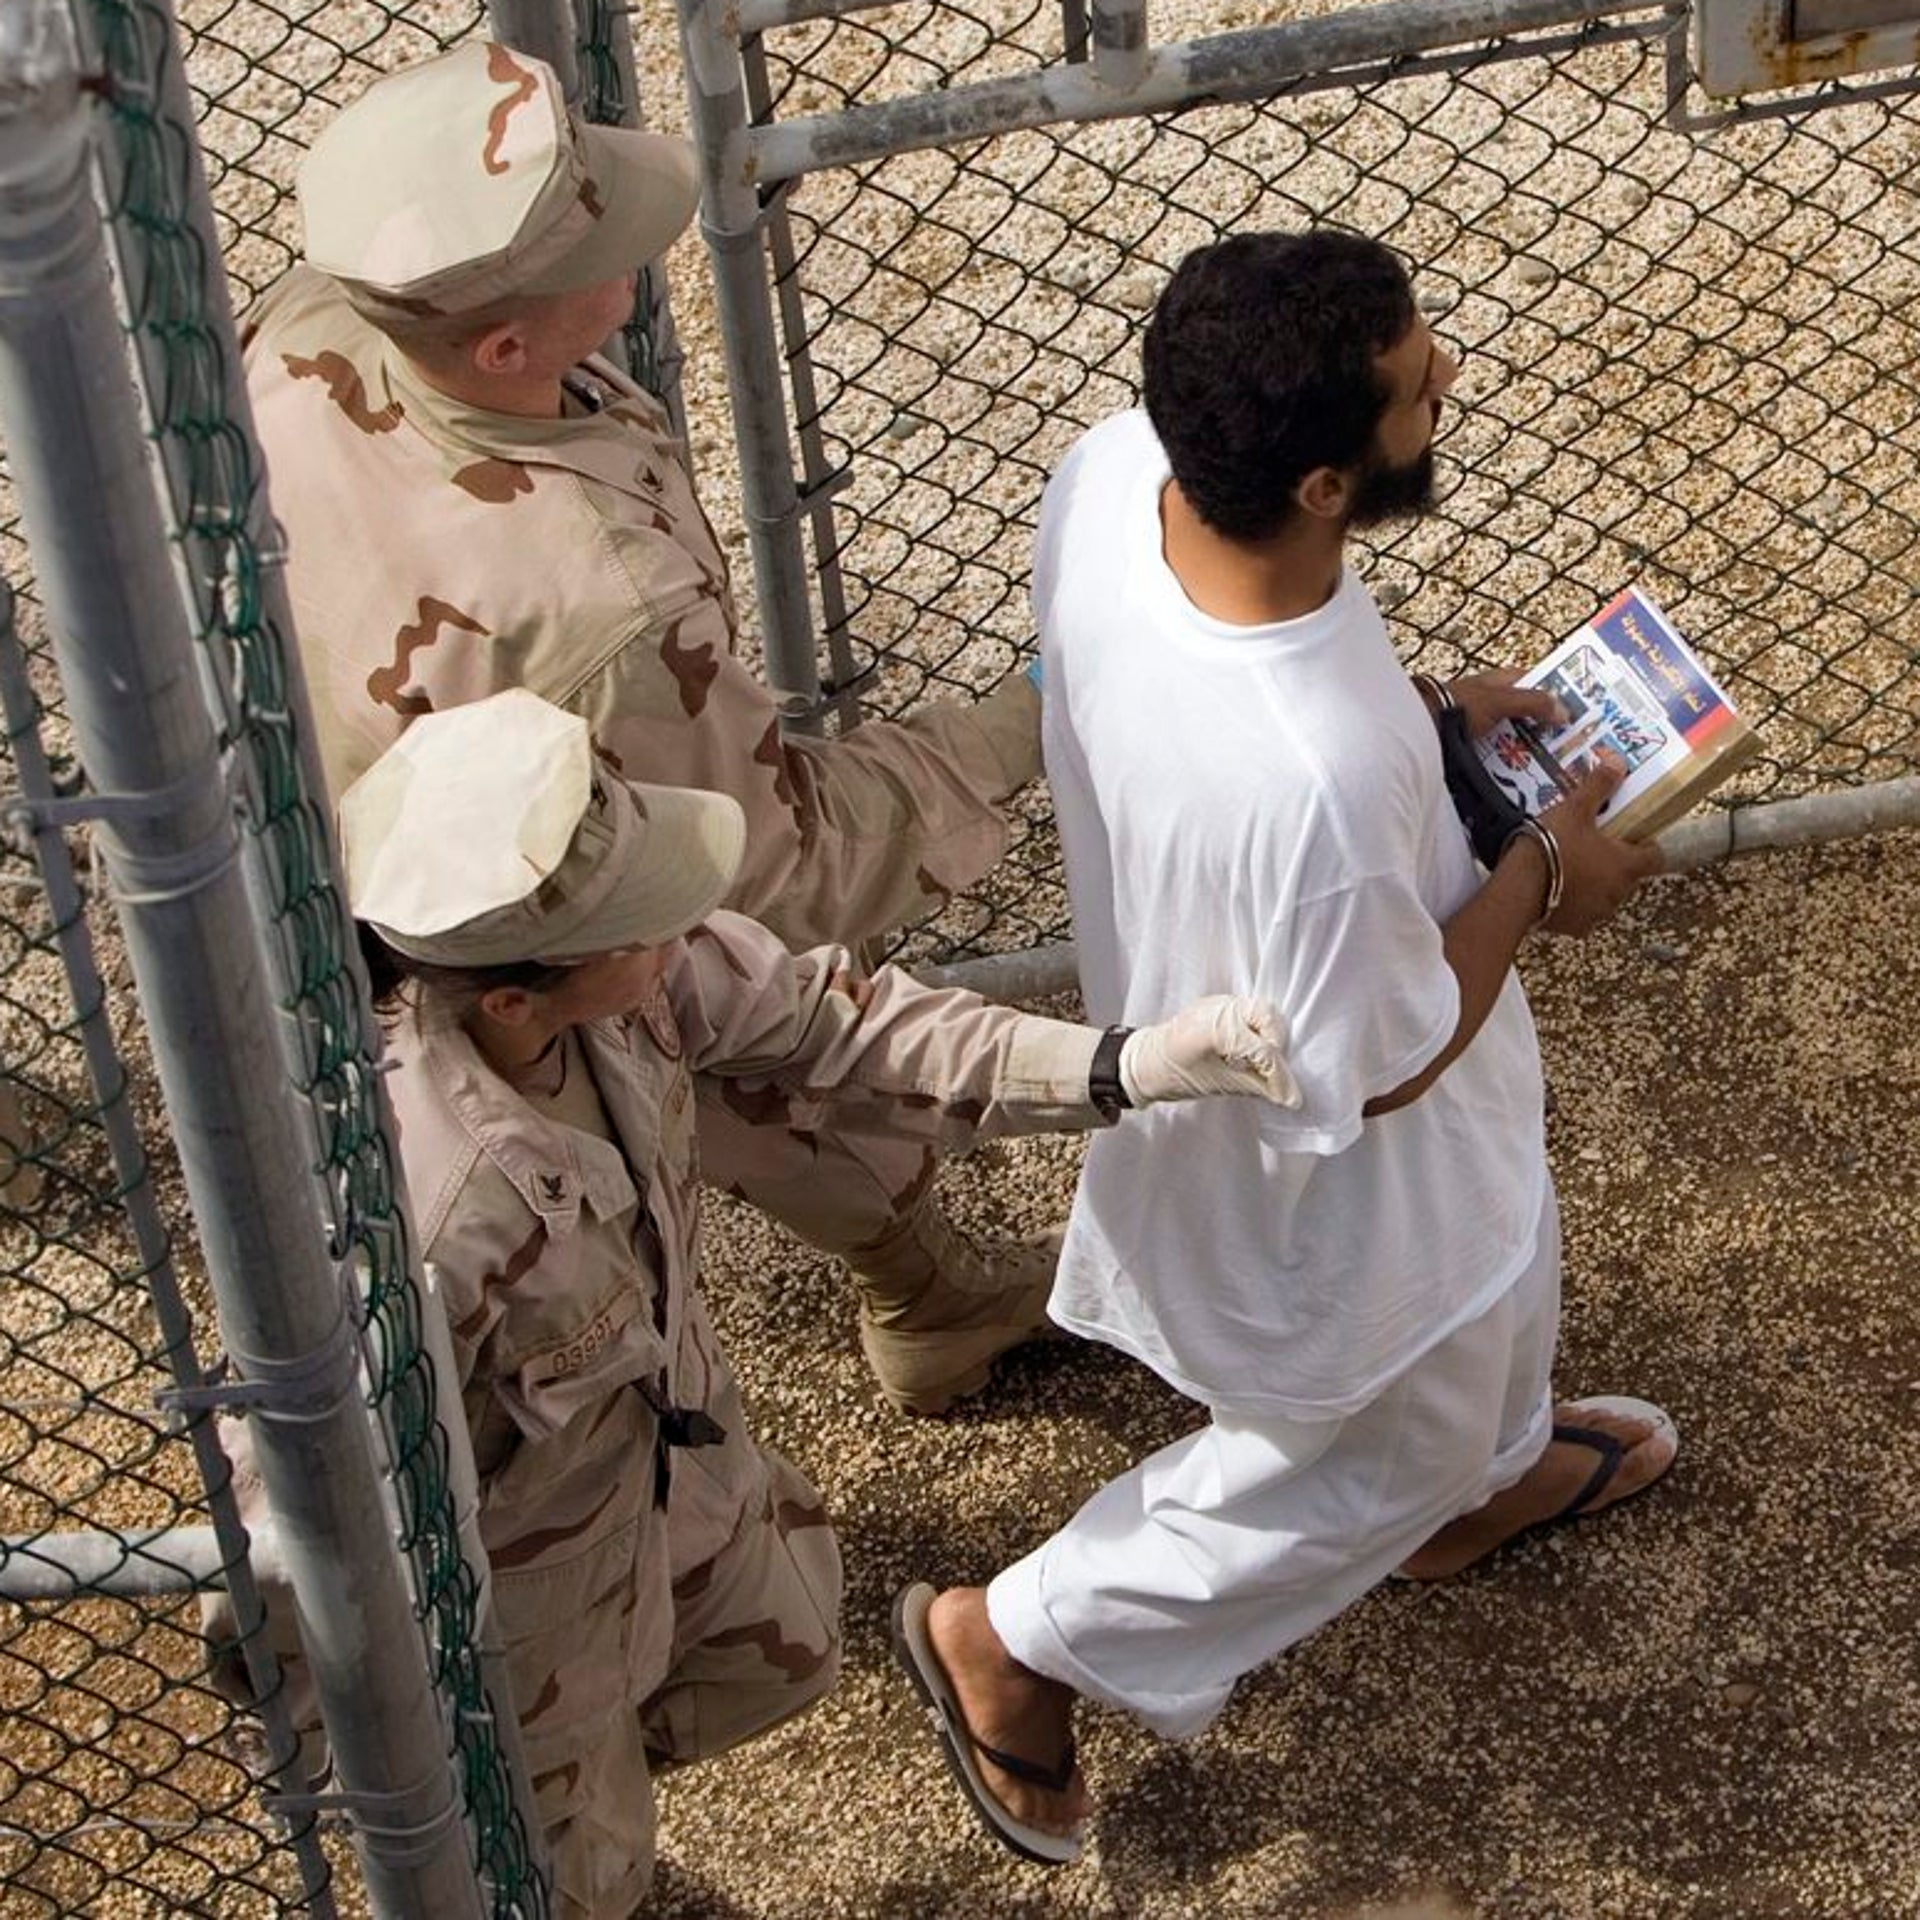 In this 2008 file image, guards escort a Guantanamo detainee carrying a book at the Camp 4 detention facility in Guantanamo Bay, Cuba.